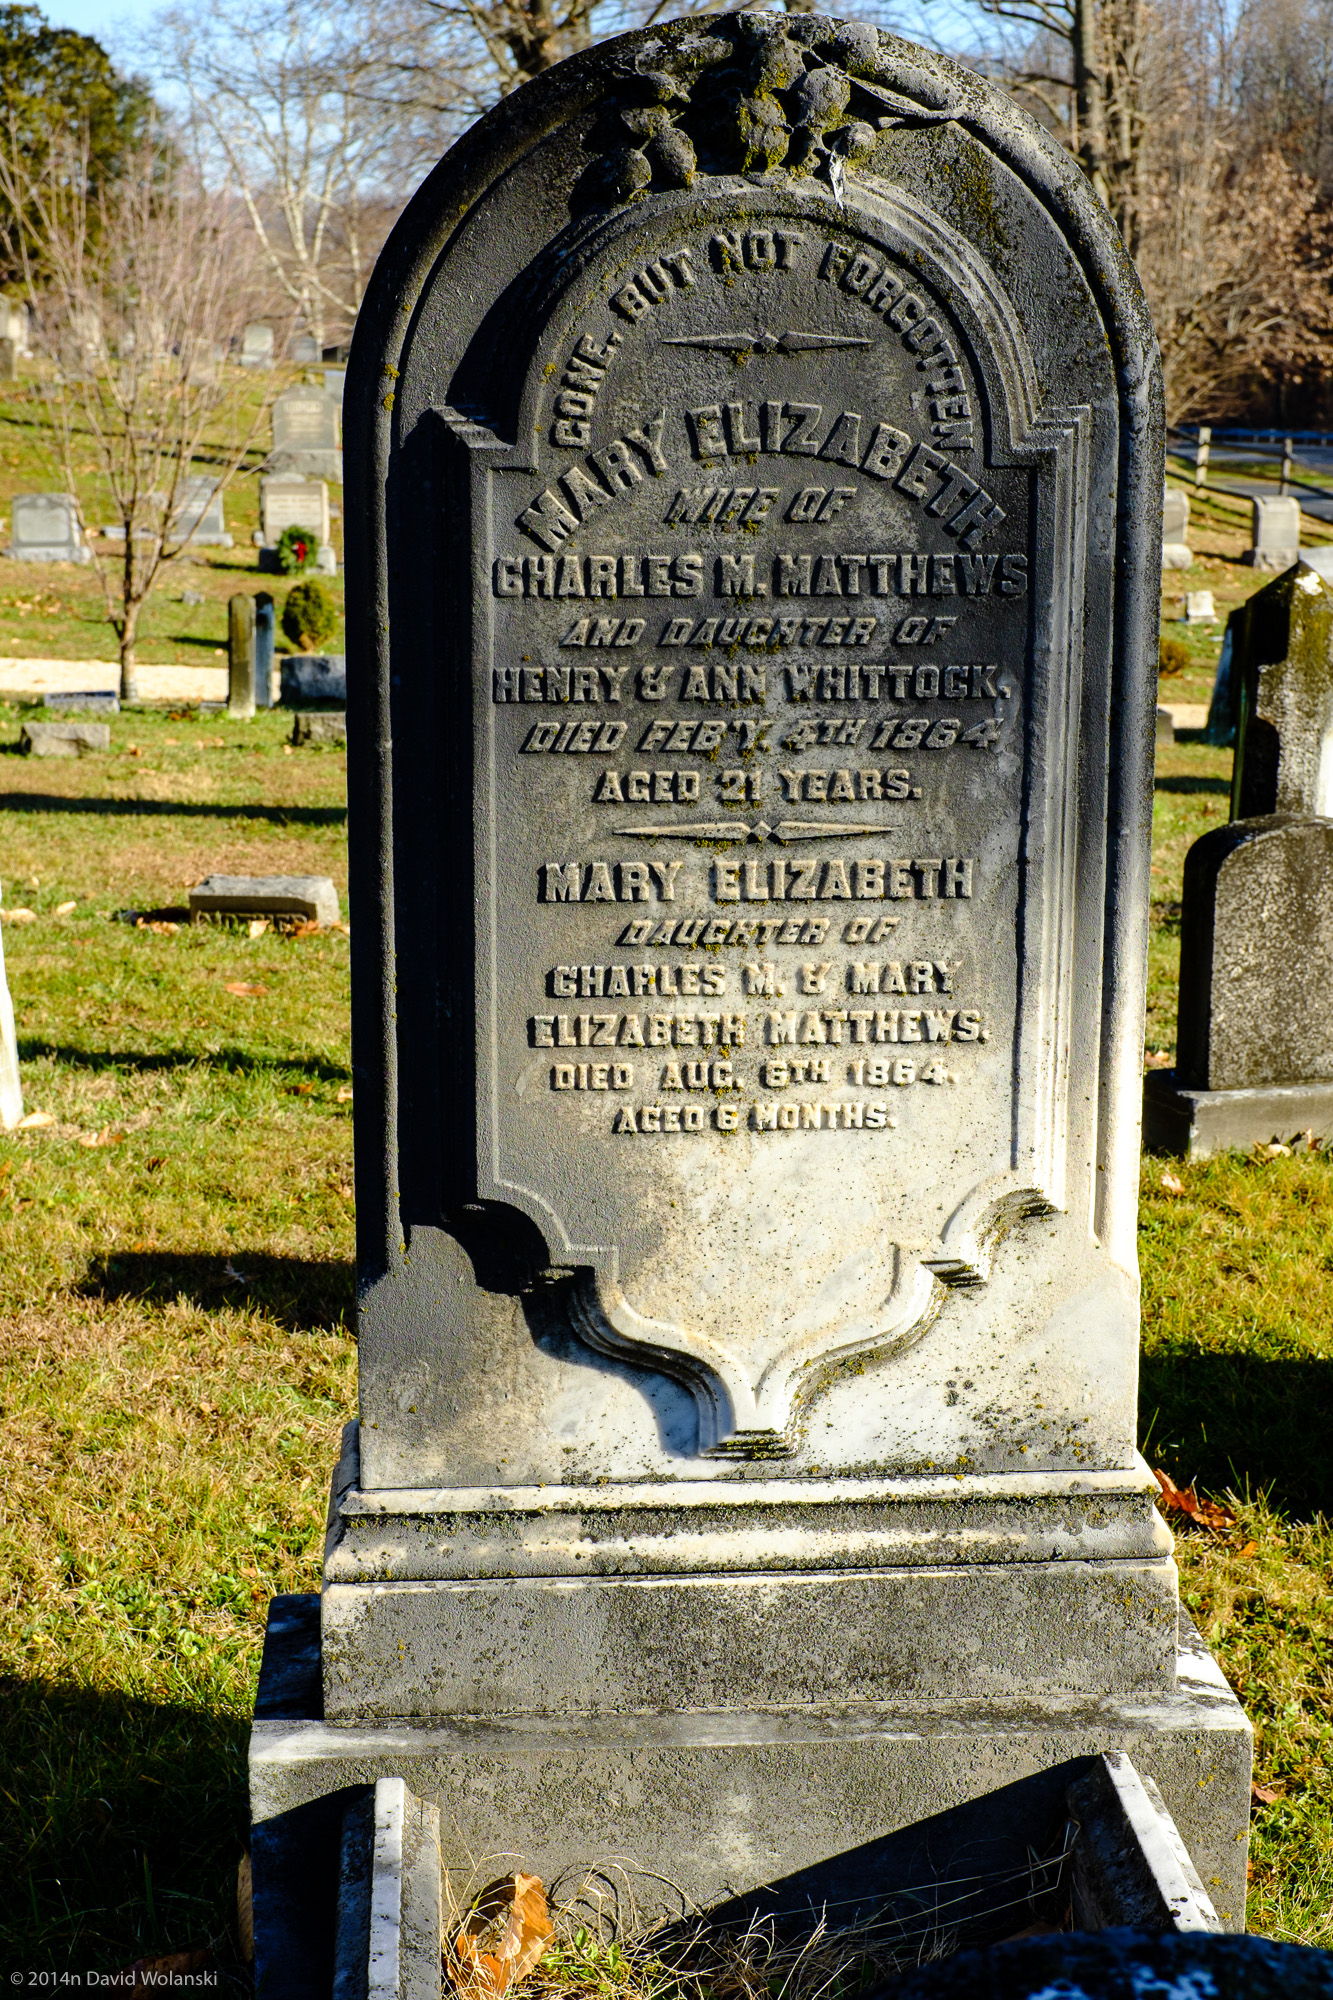 Charles Mathews wife died in child birth, his daughter who had his wife's name, died 6 months later.